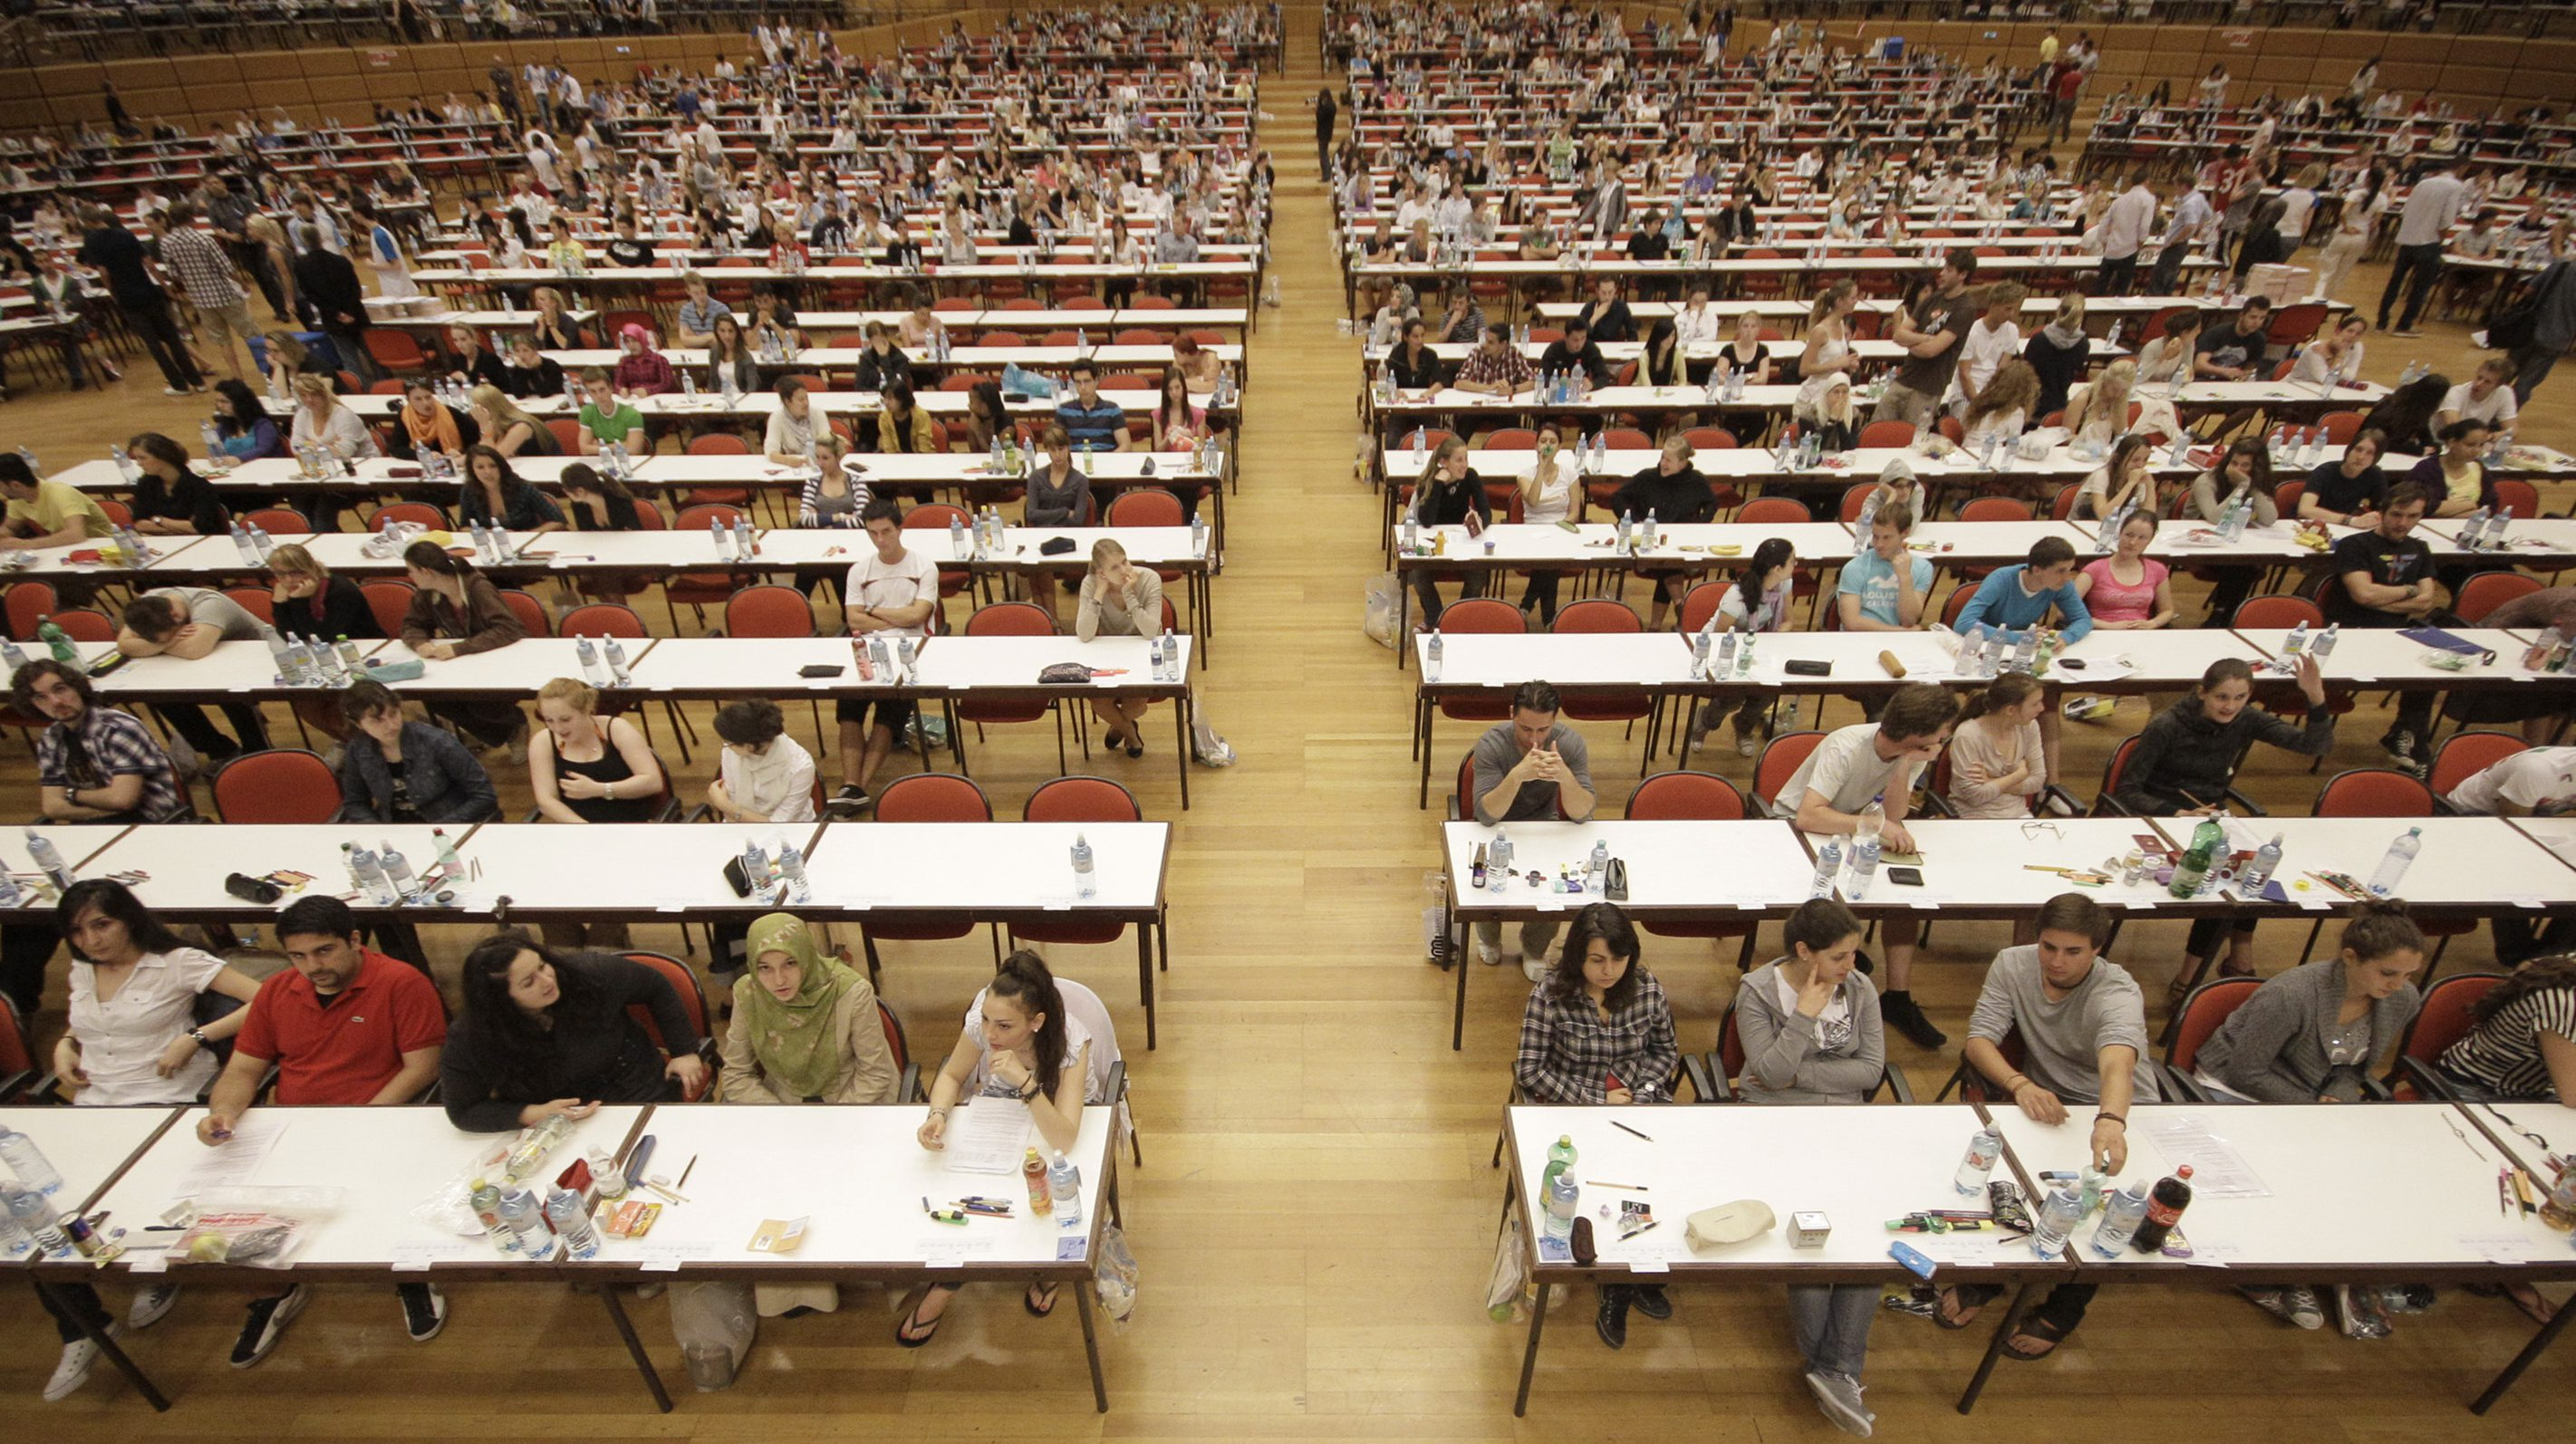 Applicants to study medicine at Vienna University wait for their qualifying examination to begin at the Austria Center convention centre in Vienna July 9, 2010. Some 4,425 people took part in the seven hour test procedure with a one-hour break, answering 198 multiple choice questions, to qualify for one of 740 places. REUTERS/Lisi Niesner  (AUSTRIA - Tags: EDUCATION IMAGES OF THE DAY) - RTR2G92P